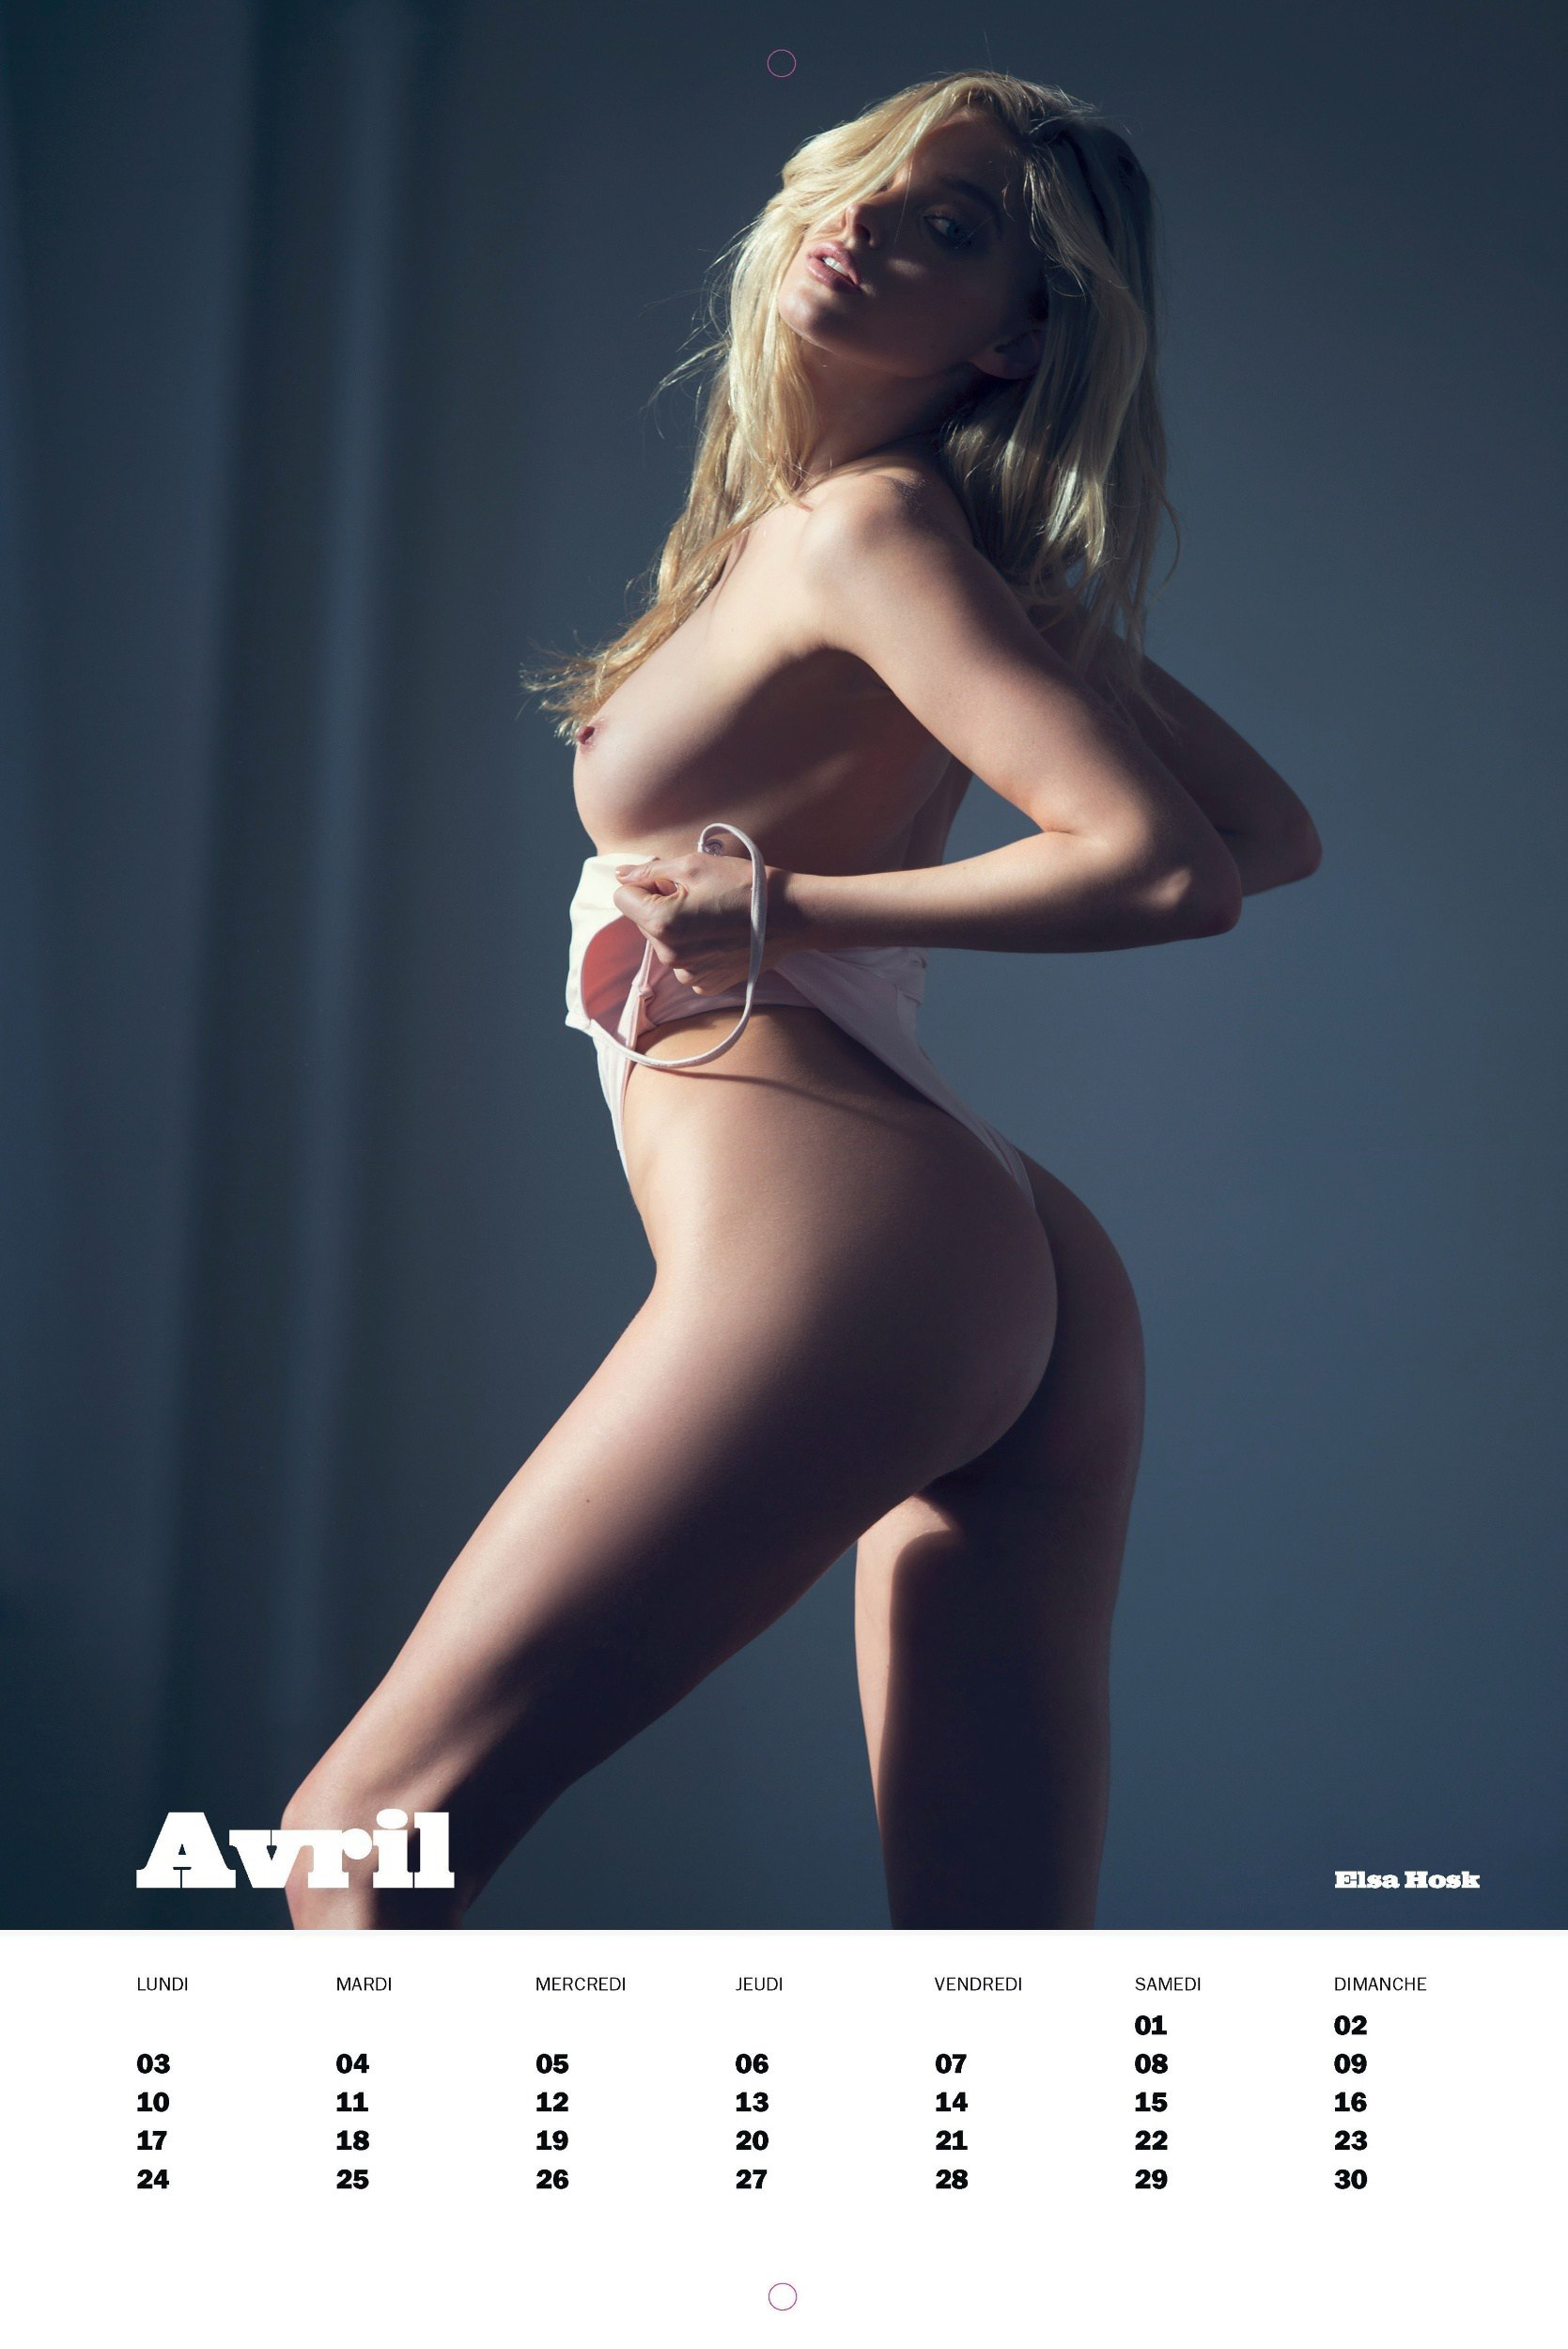 lui-magazine-calendar-2017-by-david-bellemere-04-april-anais-mali-hilary-rhoda-esla-hosk-barbara-palvin-folkr